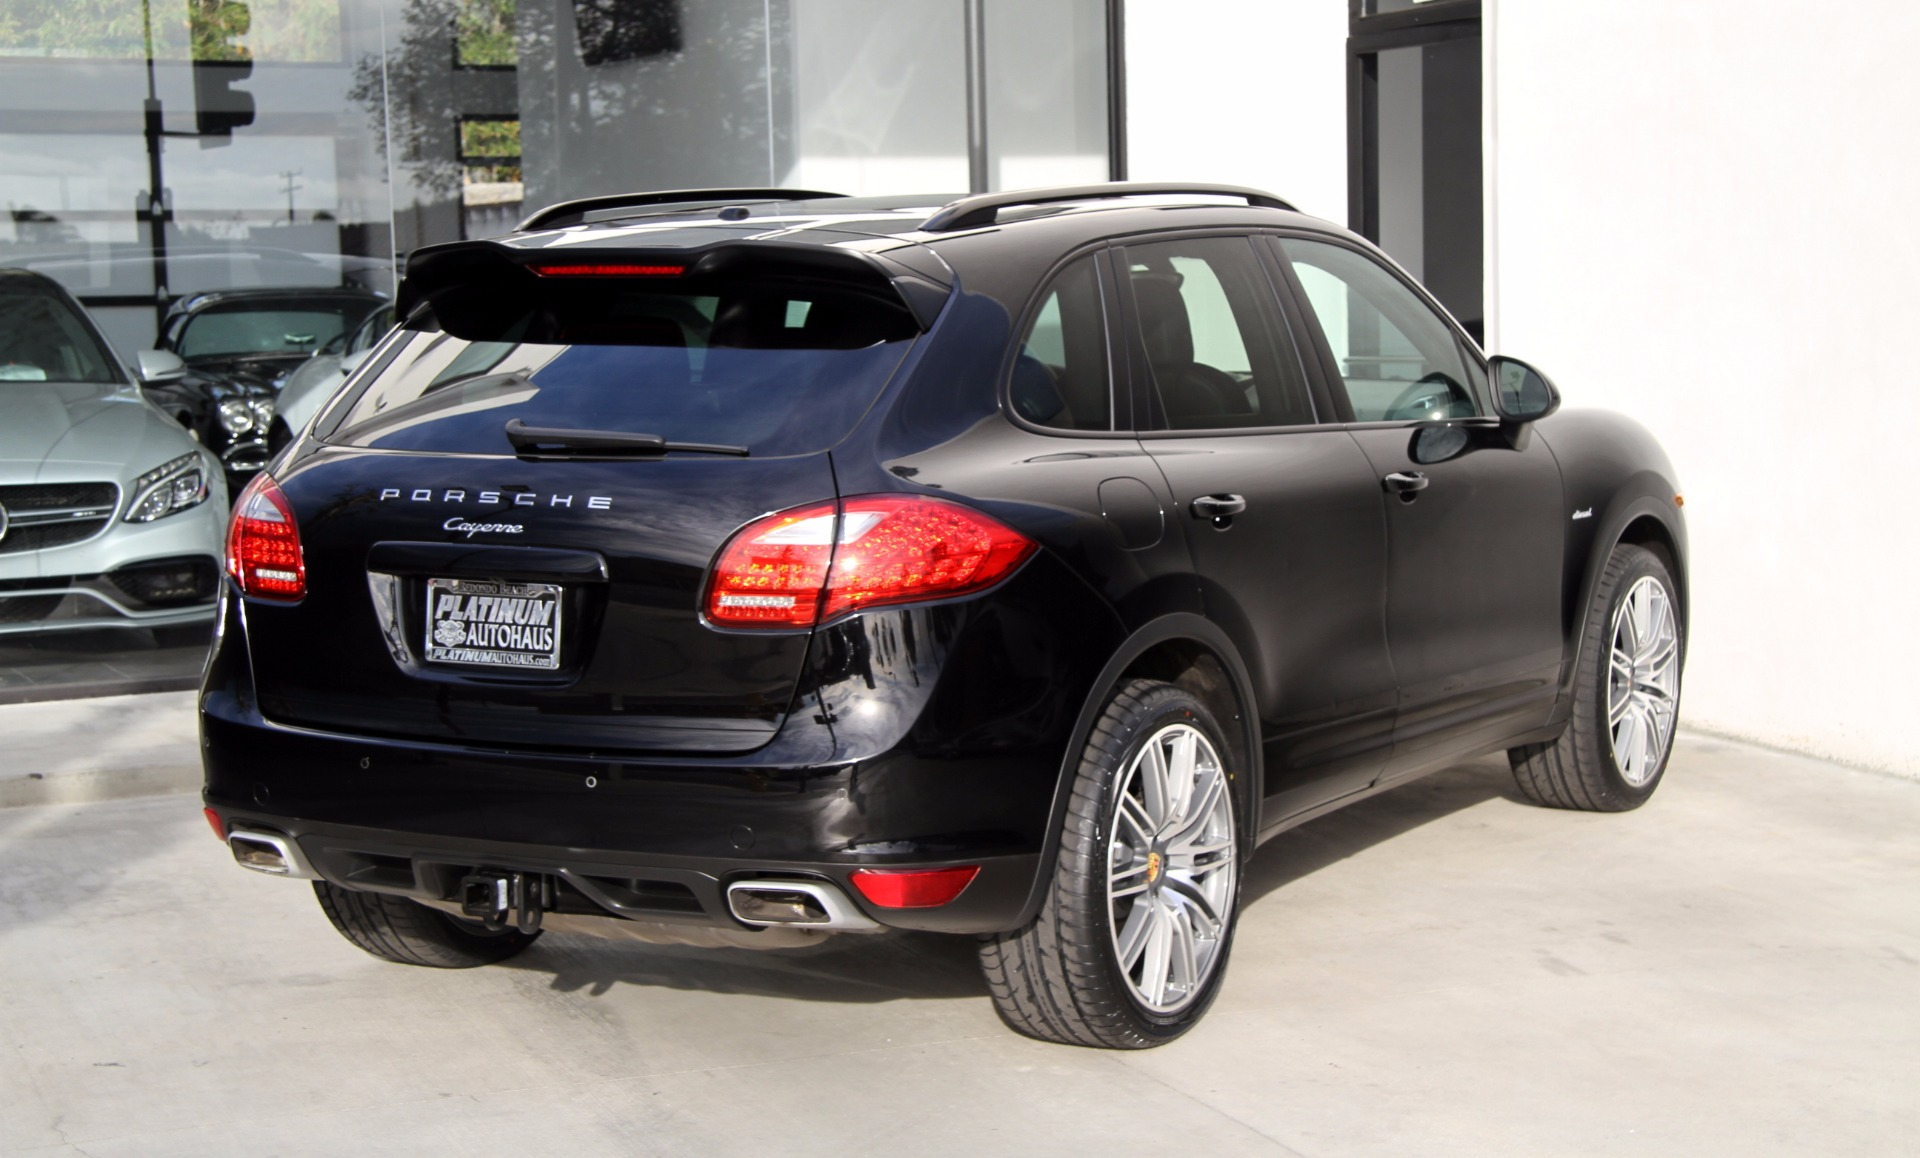 Used Suv For Sale Near Me >> 2014 Porsche Cayenne Diesel Stock # 6033 for sale near ...